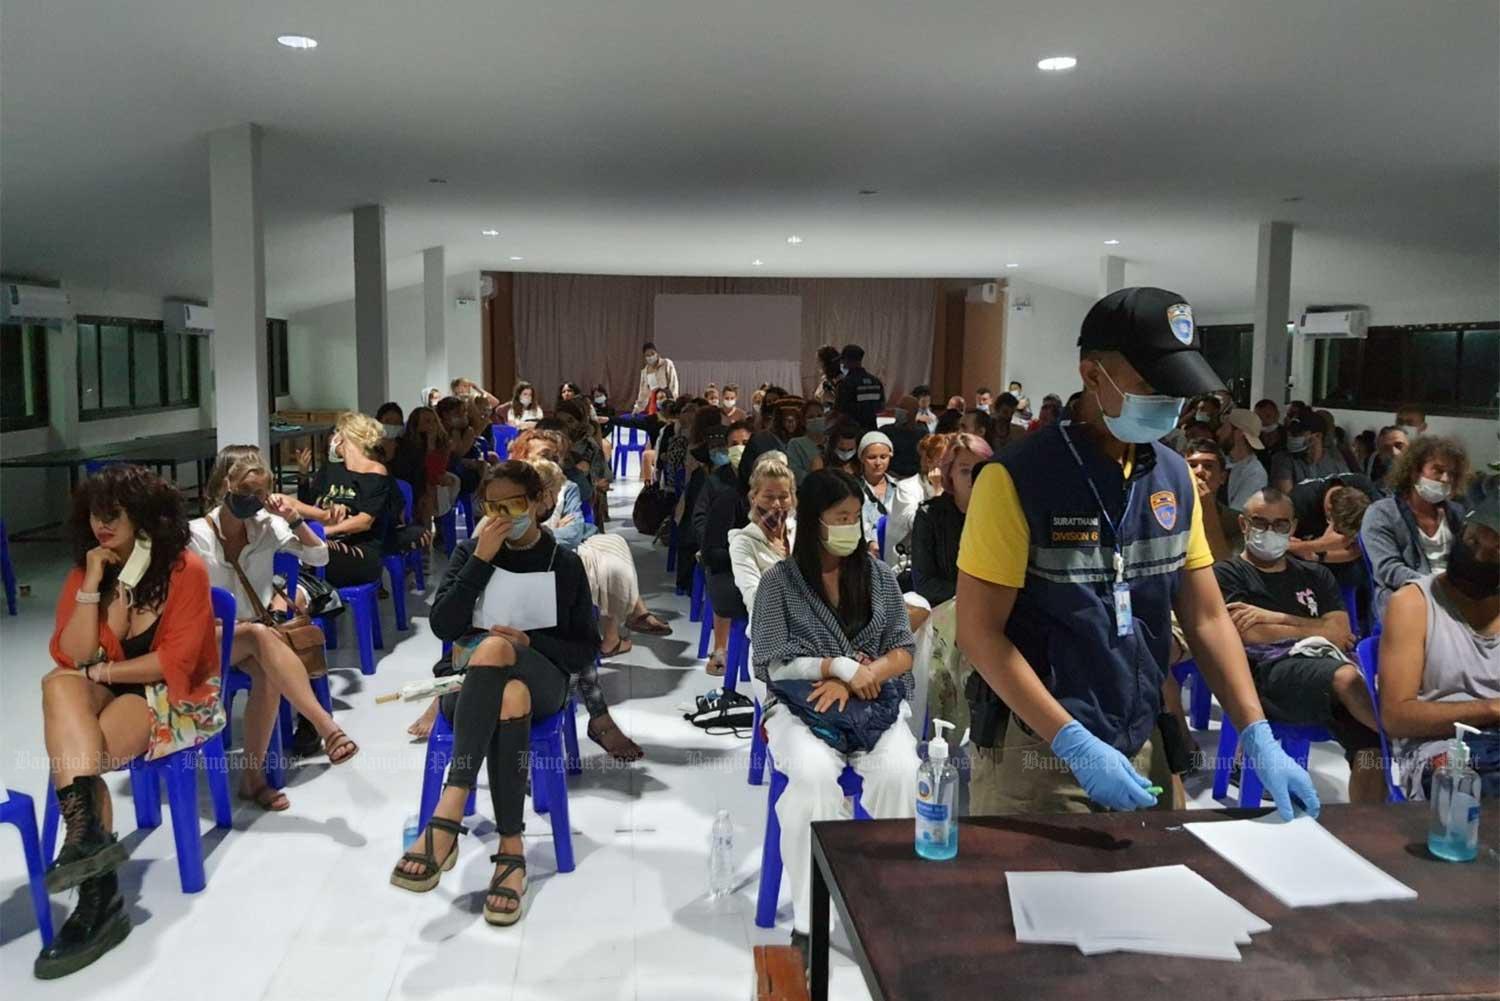 The 111 people arrested partying in breach of Covid-19 controls at the Three Sixty Bar on Koh Phangan island on Tuesday night were seated well apart when taken to the district office. (Photo: Surat Thani immigration/ Supapong Chaolan)